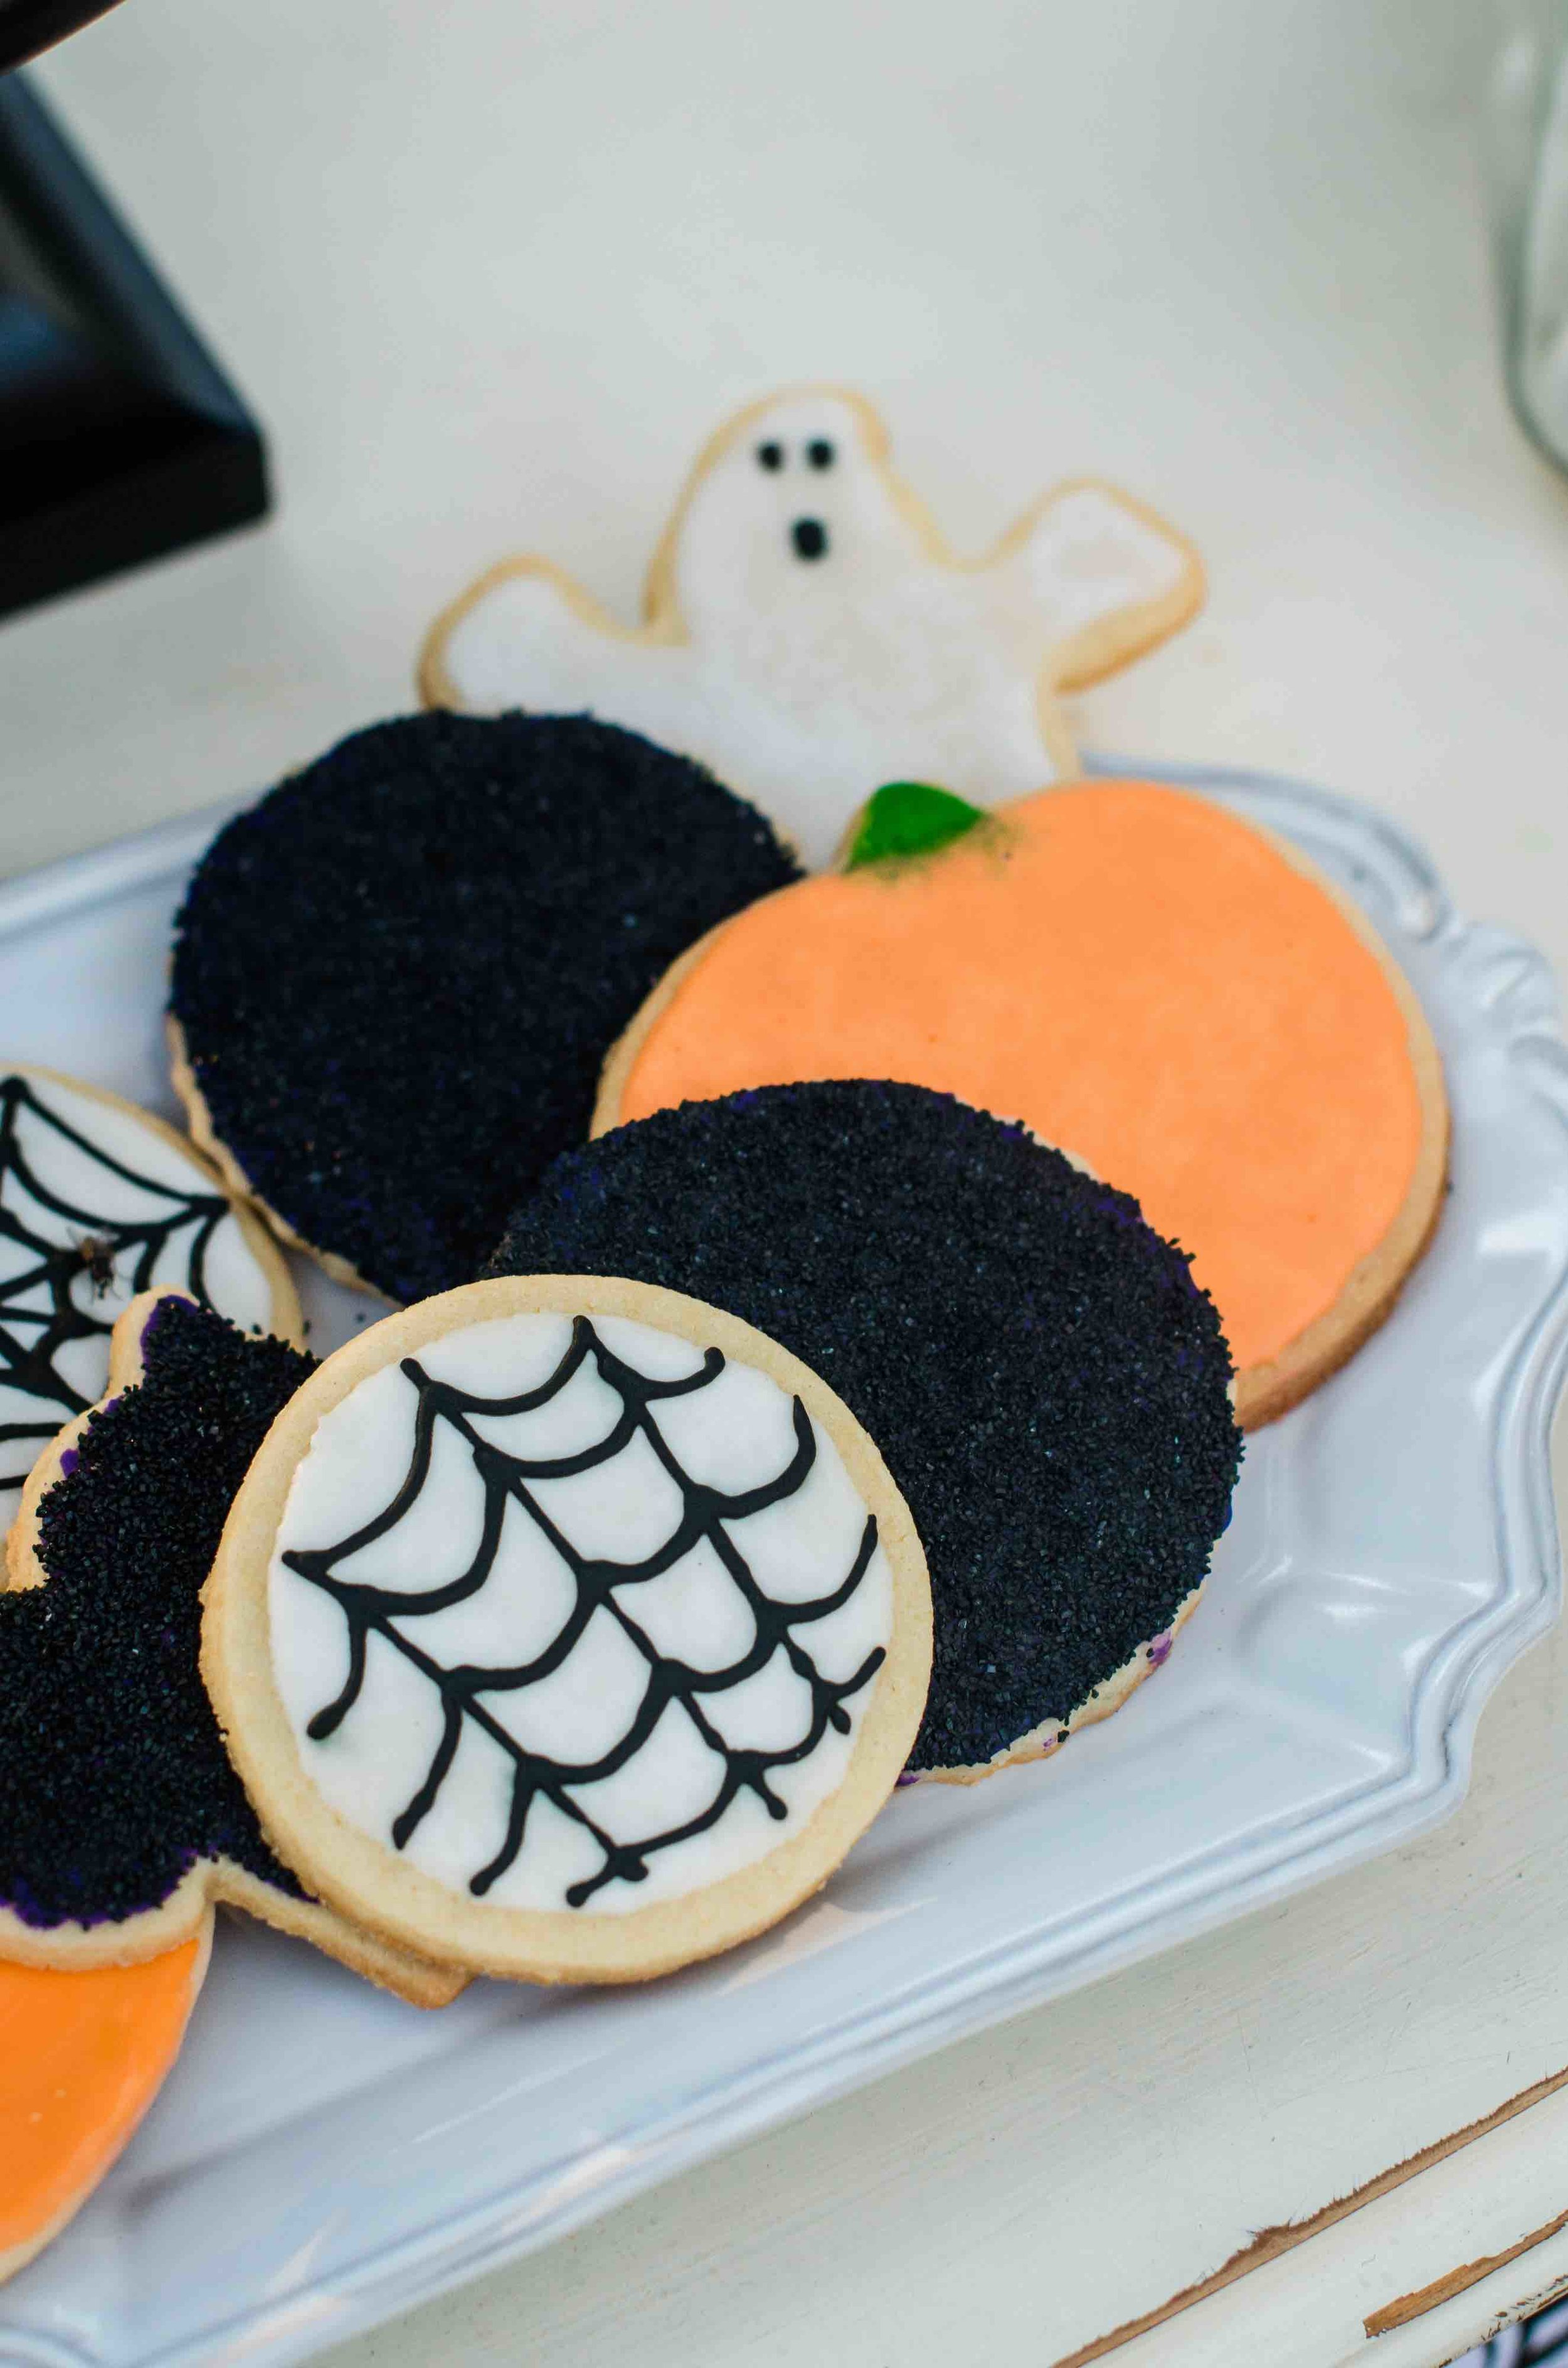 Amazing Halloween Party Cookies decorated with glittery sugar and cobwebs. Halloween Cookies include ghosts, pumpkins and spider webs. Click to see all the Halloween Party Ideas that you can re-create for your very own Halloween Kids Party. Styled by party stylist Mint Event Design. #halloween #partyideas #partyinspiration #partydecor #desserttable #halloweencookies #halloweendecorations